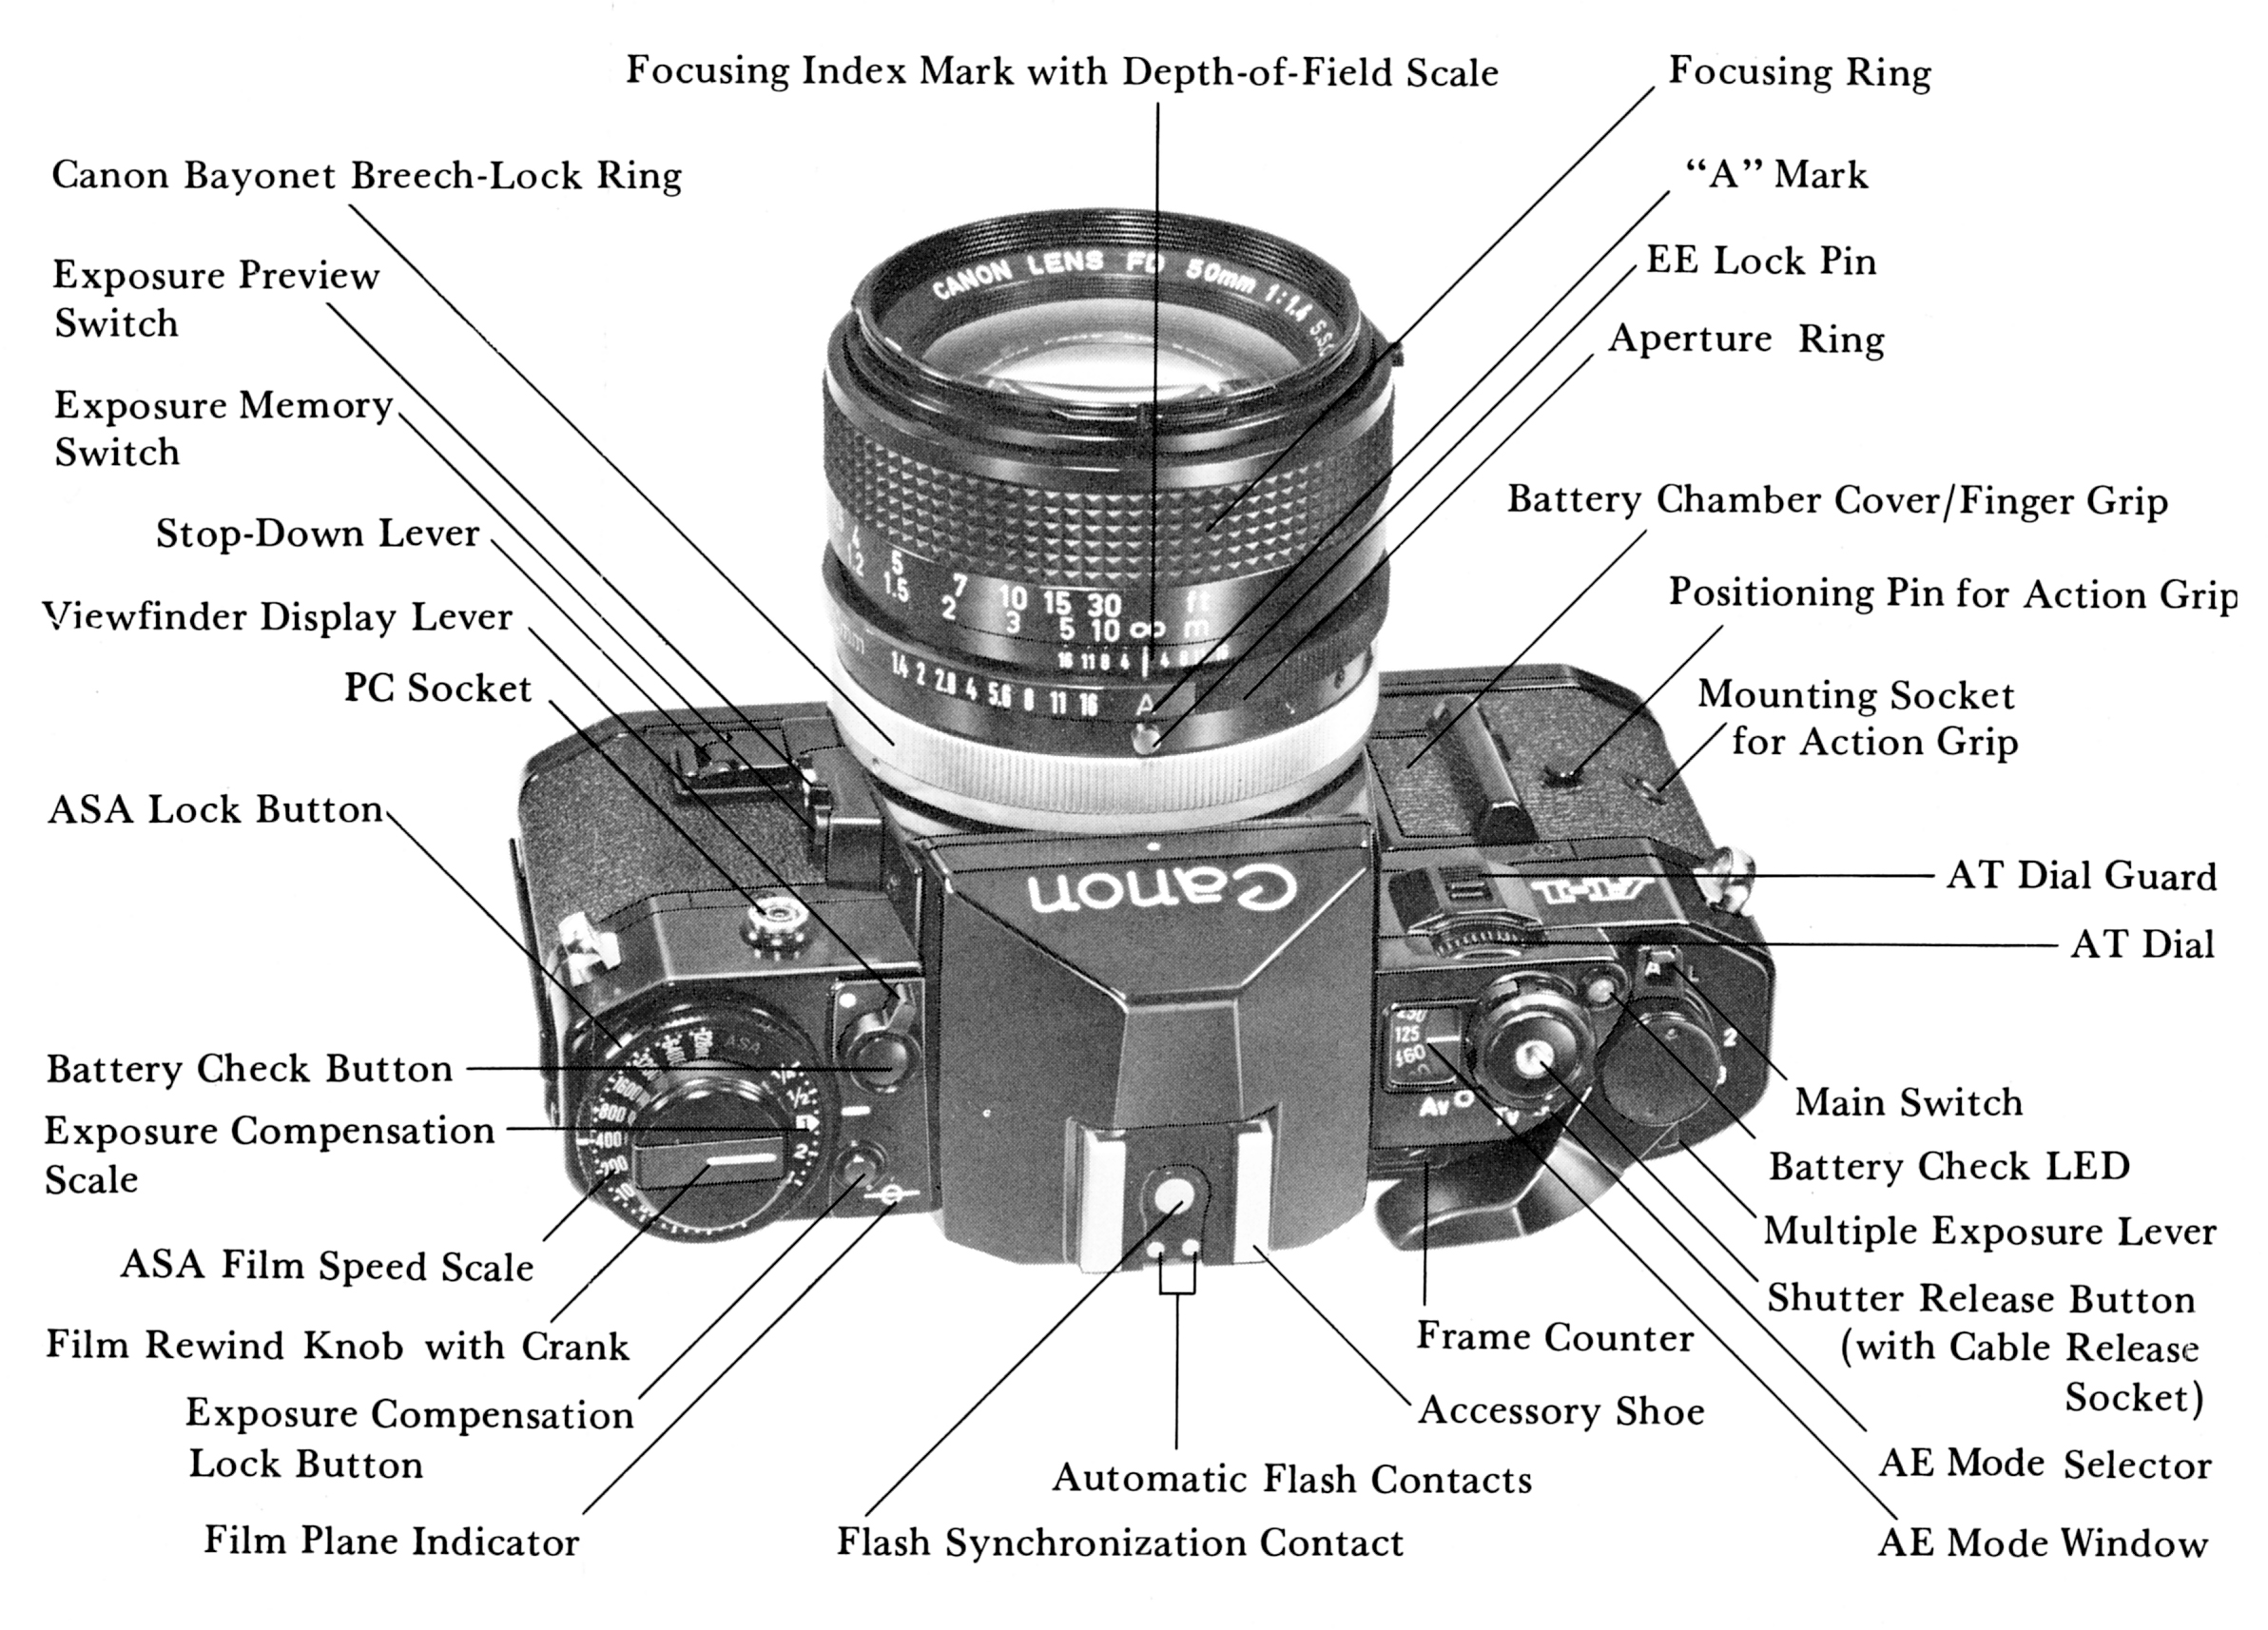 slr camera diagram 4 pin trailer connector wiring canon knowledge base a1 here is a list of the parts and